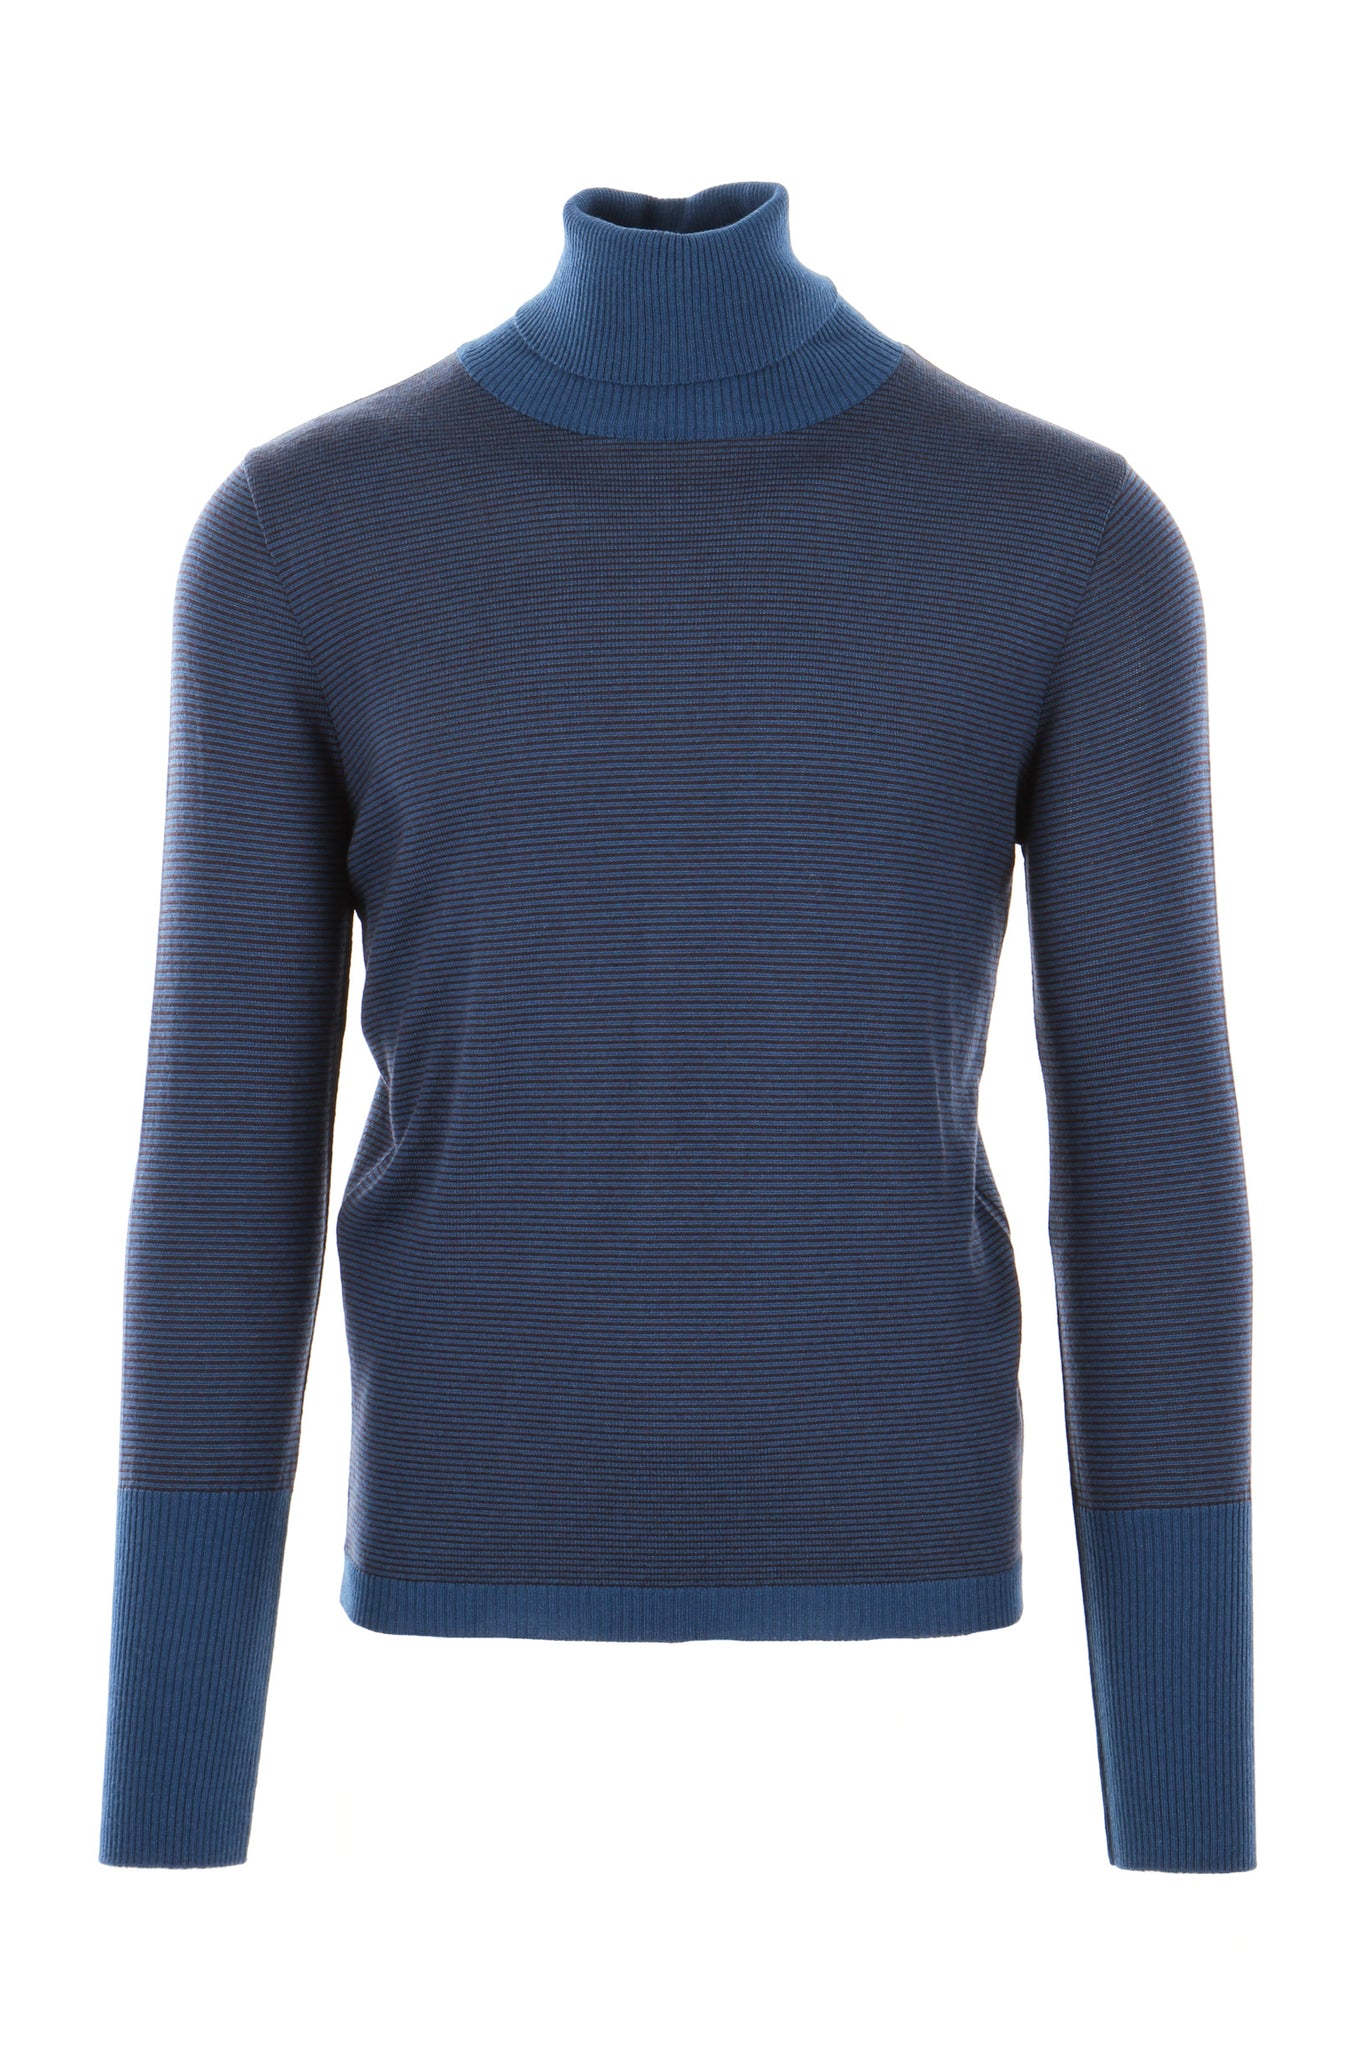 Turtleneck - Petrolium/Navy